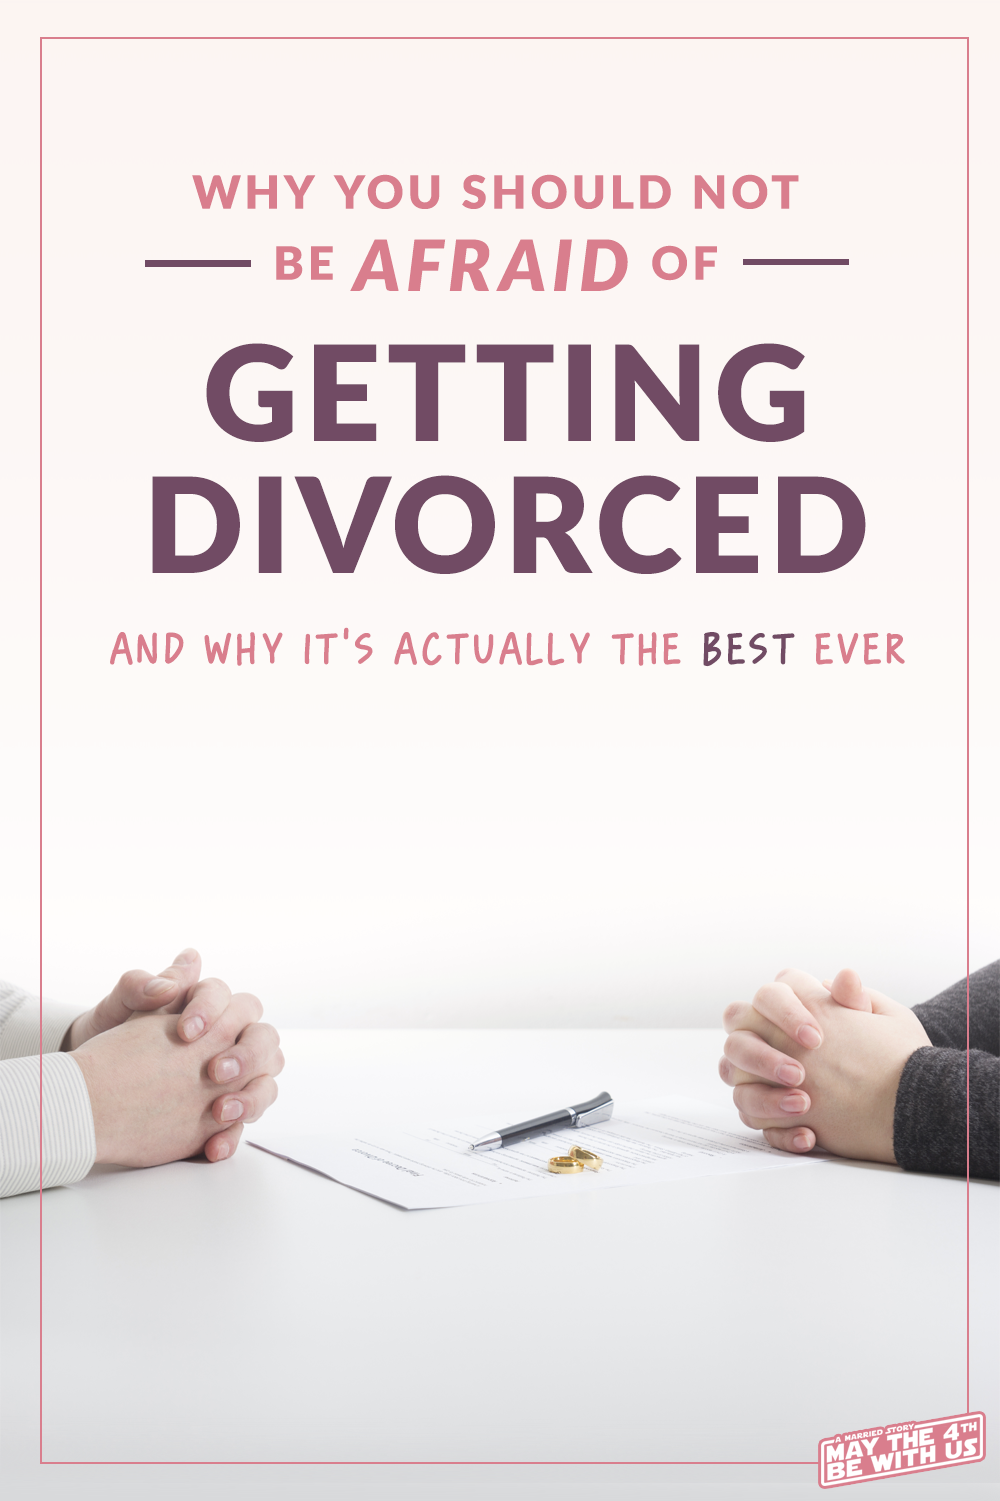 How To Get A Divorce >> Why You Shouldn T Be Afraid To Get A Divorce Divorce